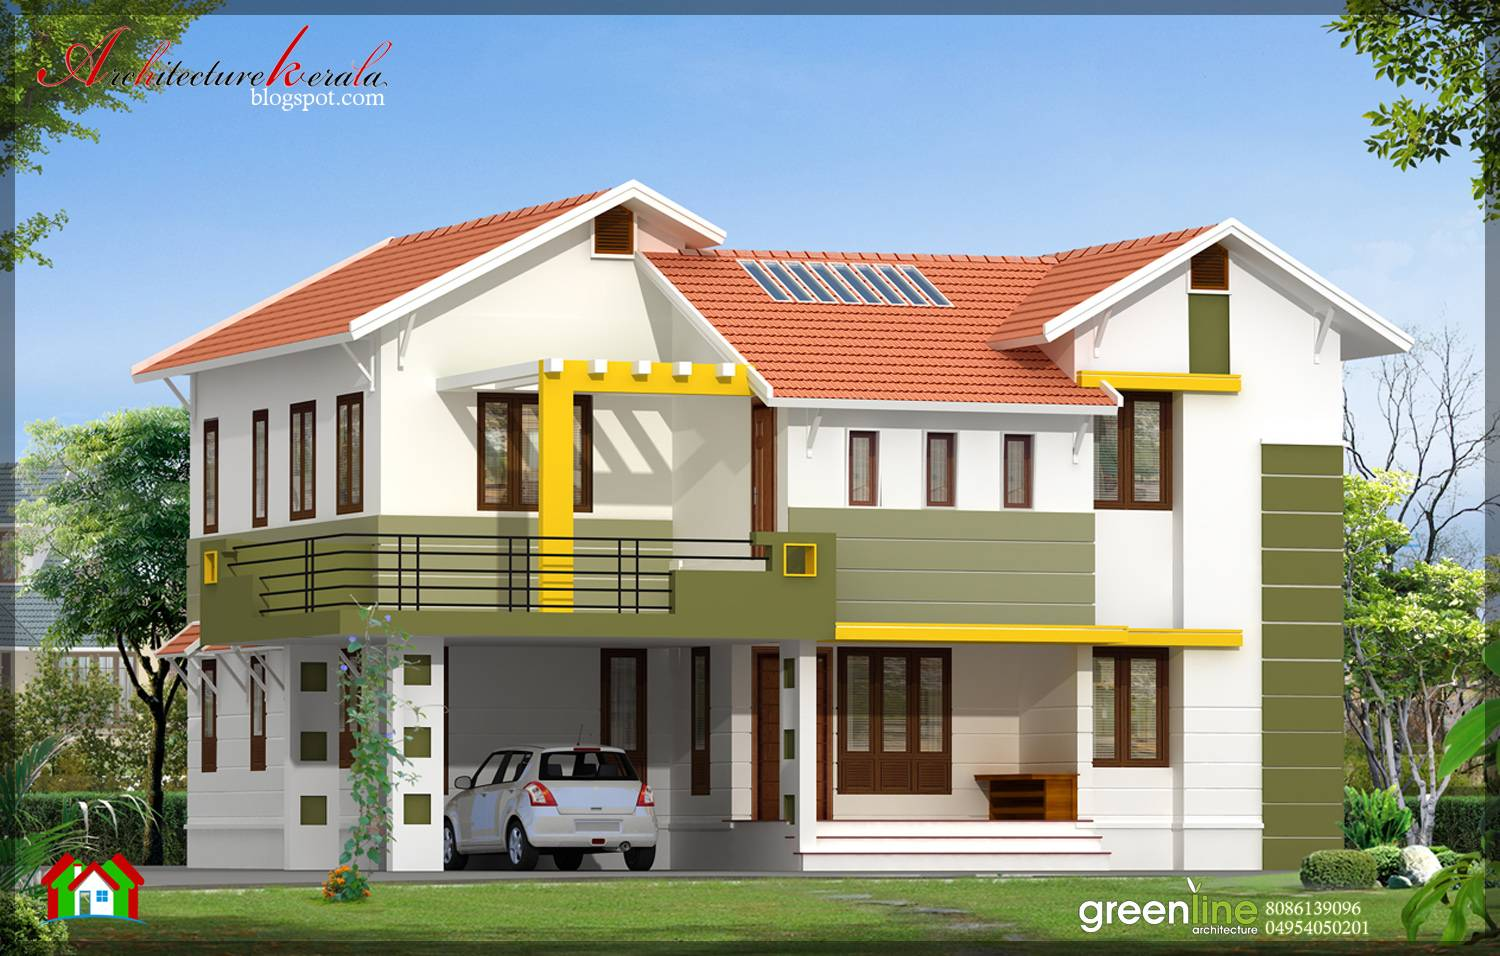 Bhk Contemporary Style Indian Home Elevation Design Home Plans Blueprints 48108